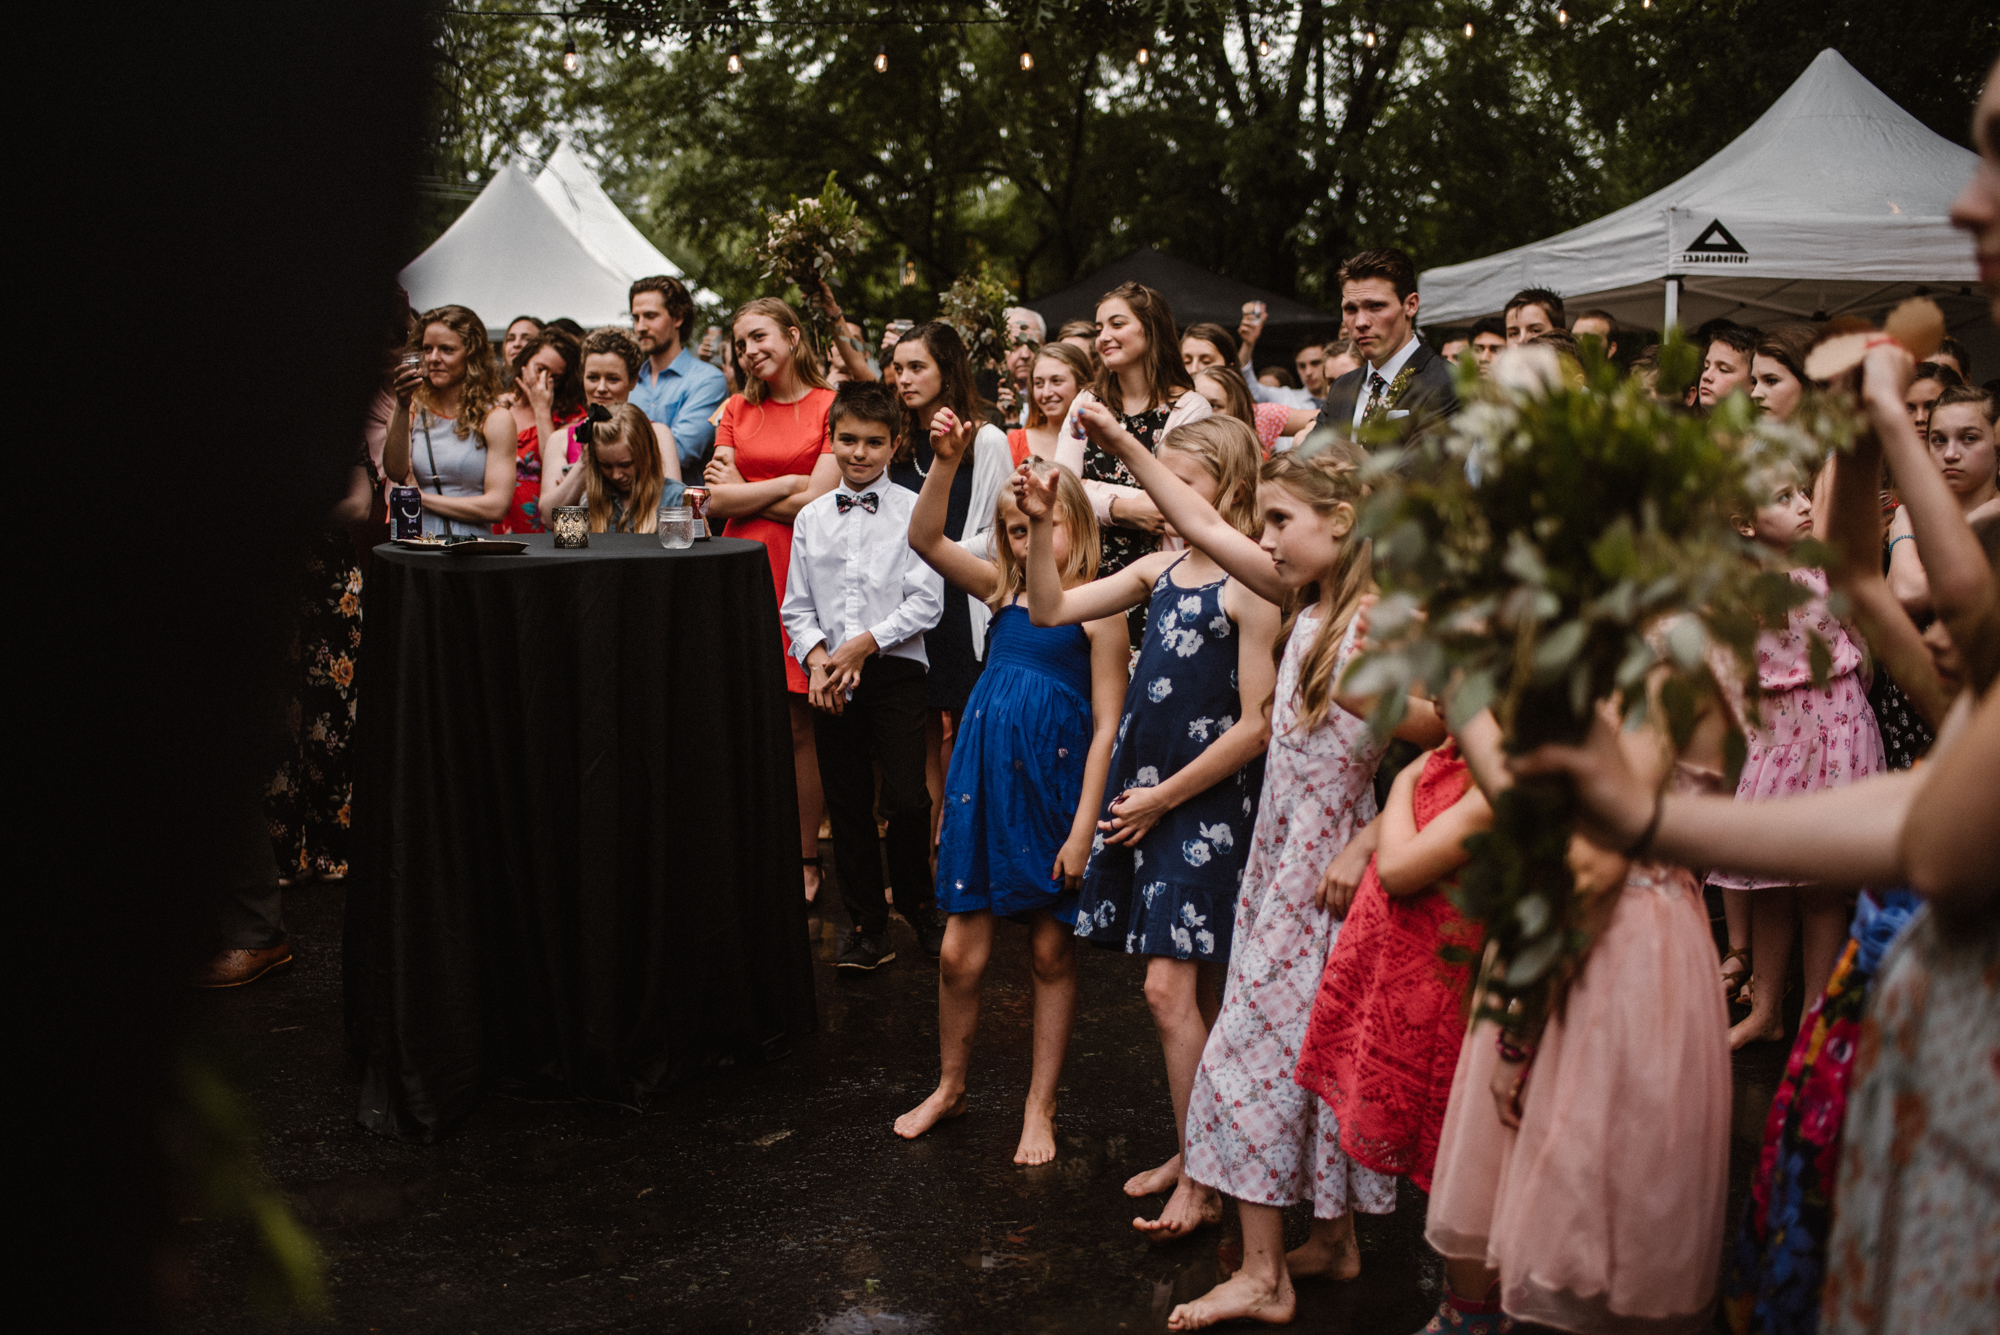 Mairi and Jude - Rainy Backyard Wedding - Intimate Wedding - Fun Reception Photos - Chicago Wedding Photographer - Catholic Wedding - White Sails Creative - Virginia Backyard Wedding Photographer_52.jpg